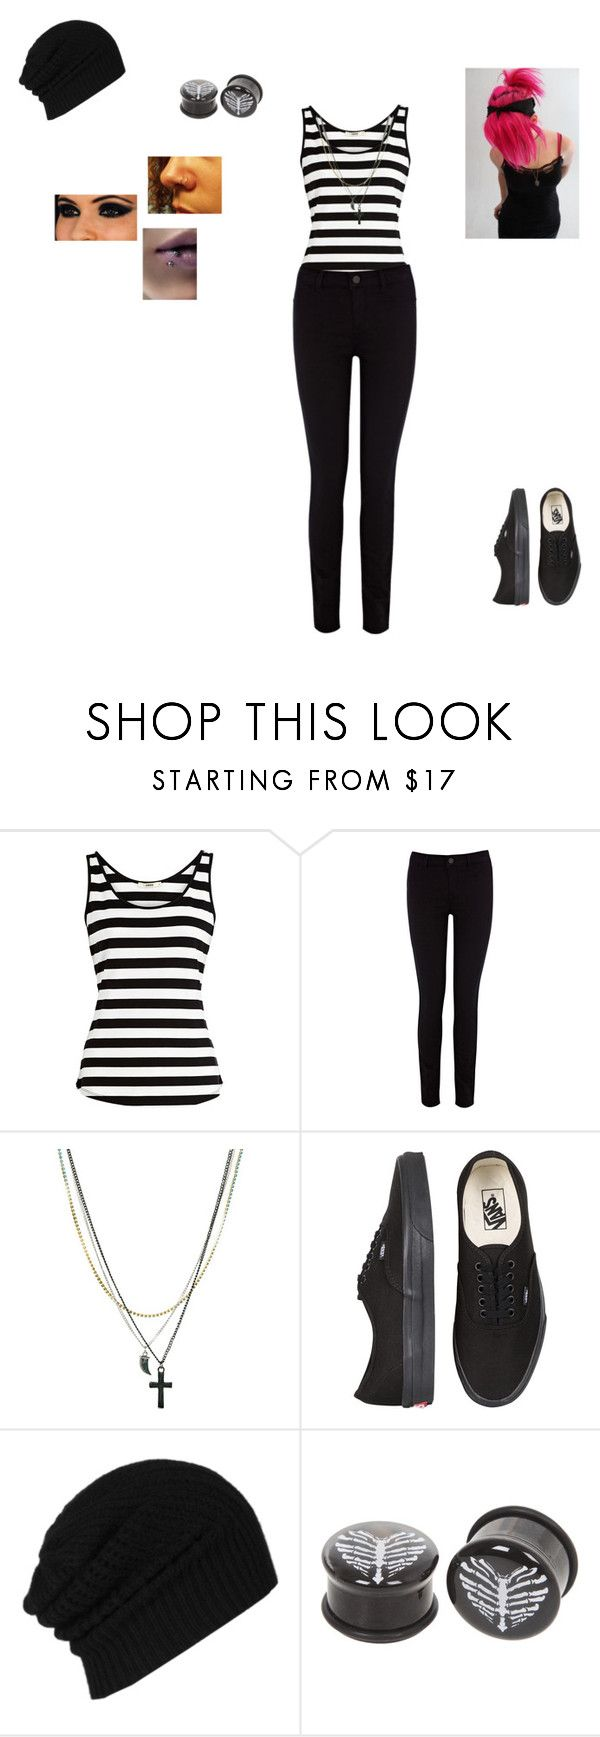 """Untitled #321"" by angel2000ll on Polyvore featuring Oasis, ASOS, Vans, AllSaints and Hot Topic"